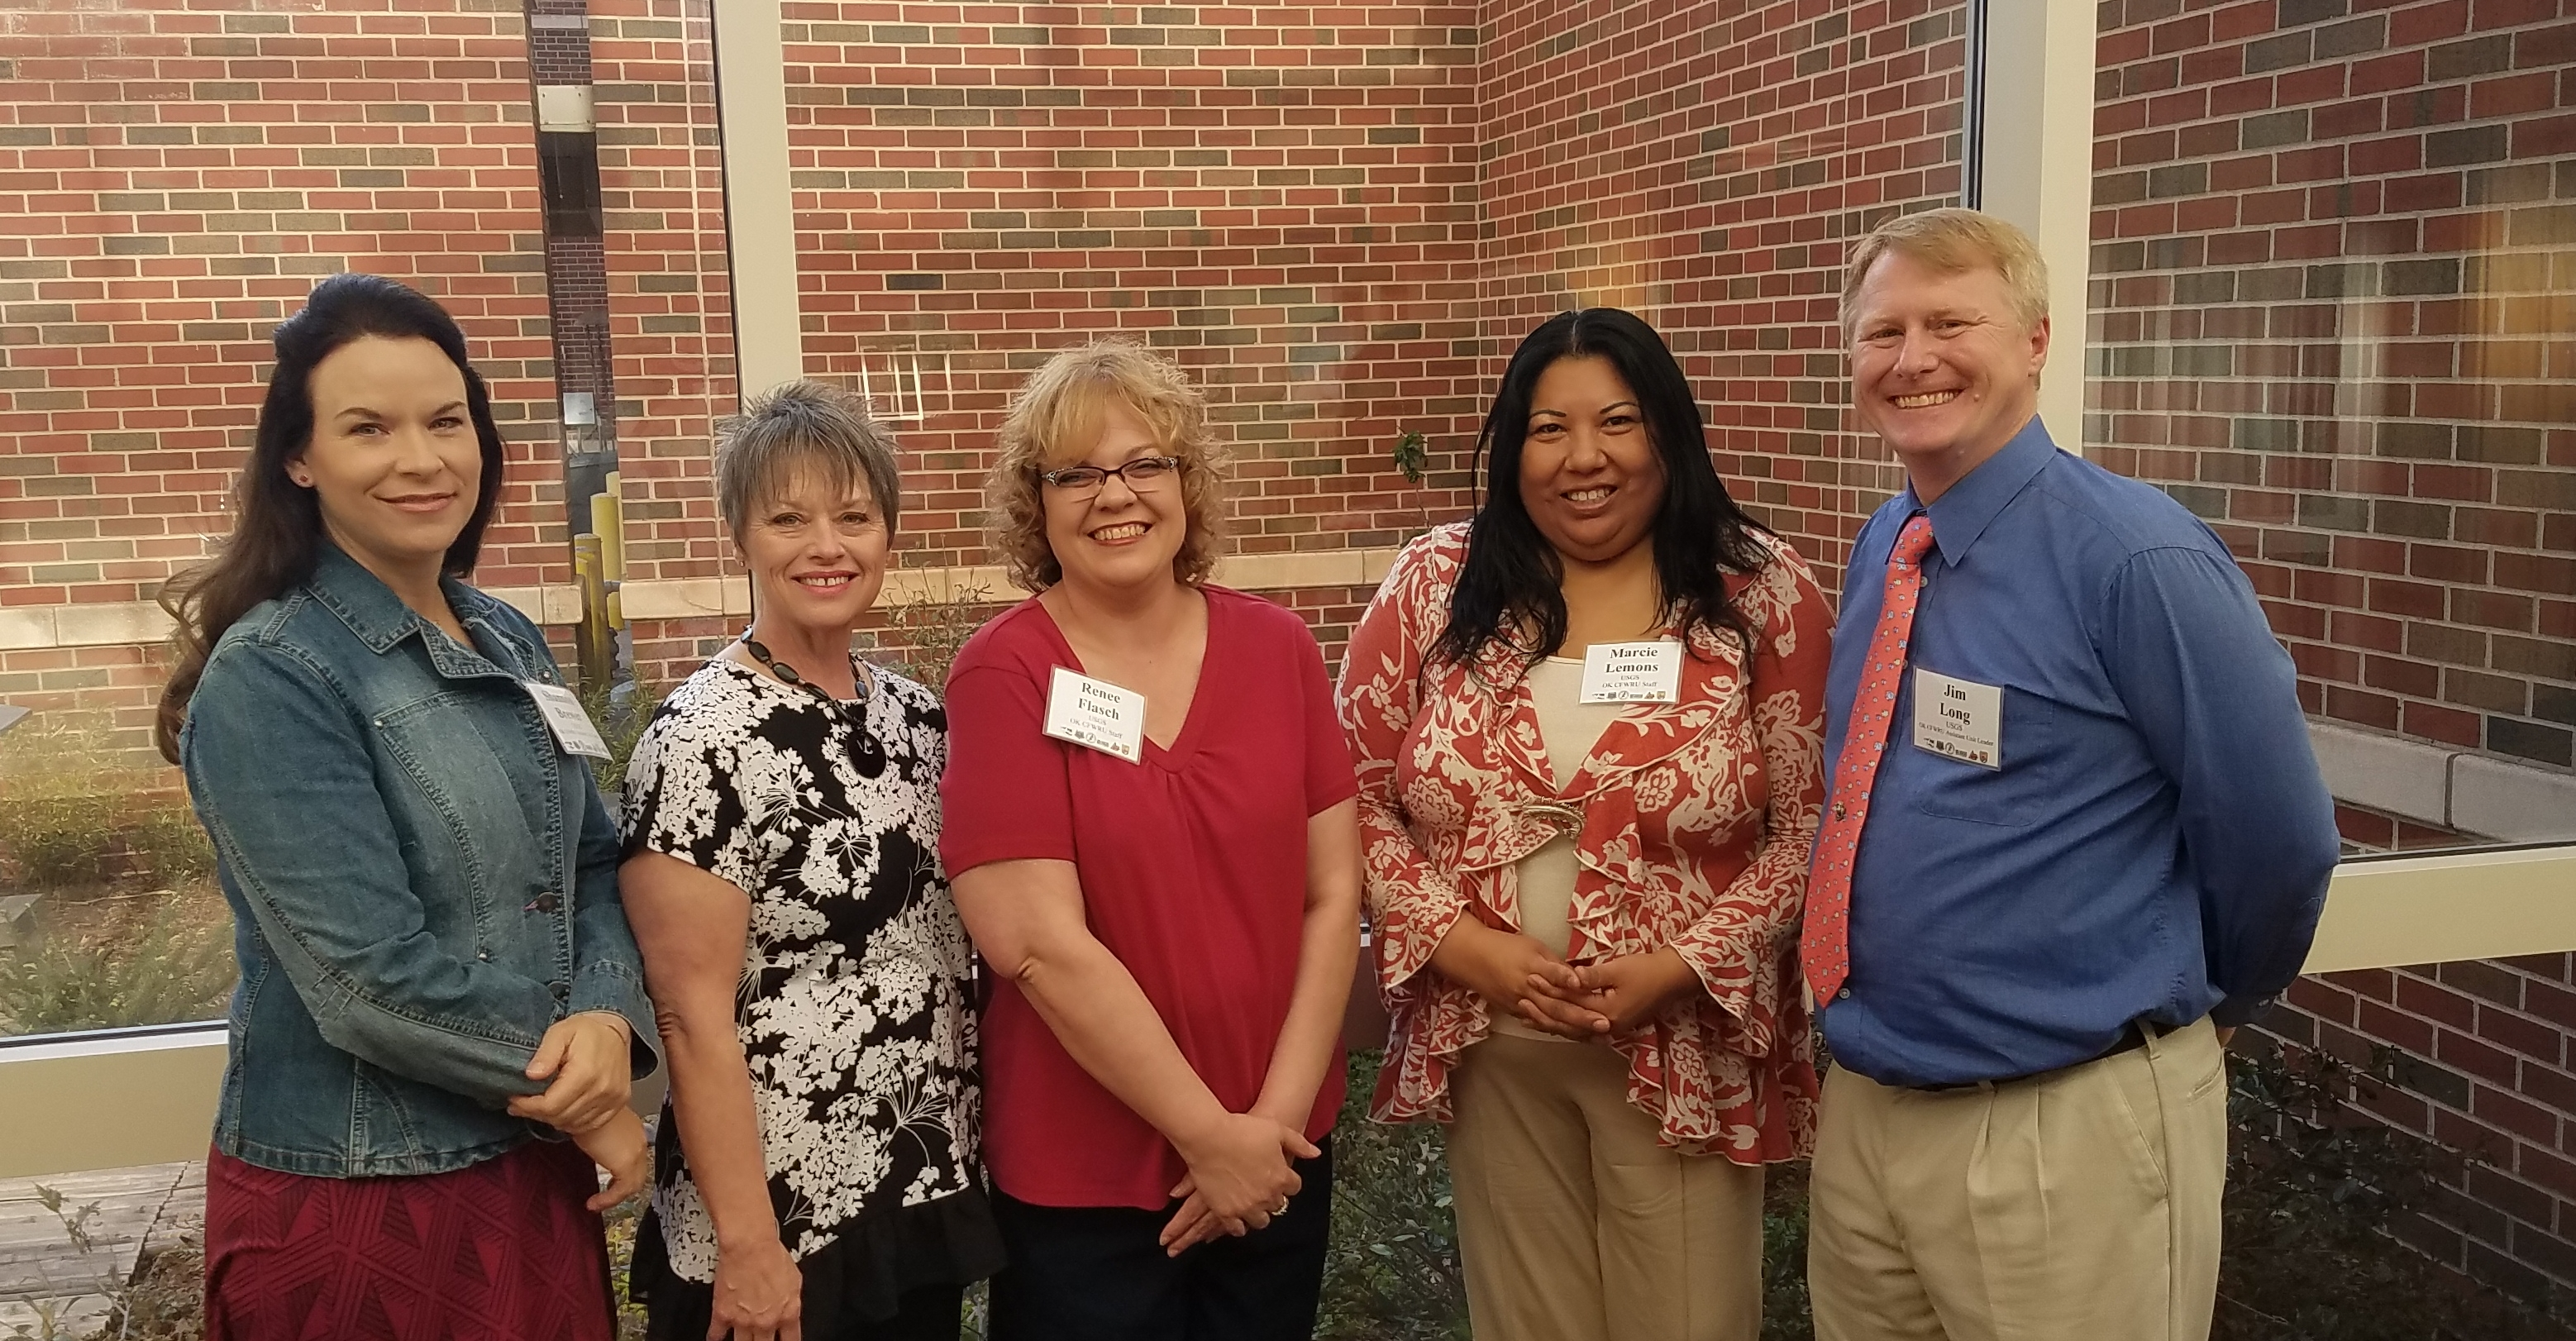 Oklahoma CFWRU staff: Shannon Brewer (AUL, Fisheries), Cheryl McKnight (Accounting Specialist), Renee Flasch (Administration Support Assistant), Marcie Lemons (Sr. Administrative Support Assistant), and Jim Long (Acting UL, Fisheries)